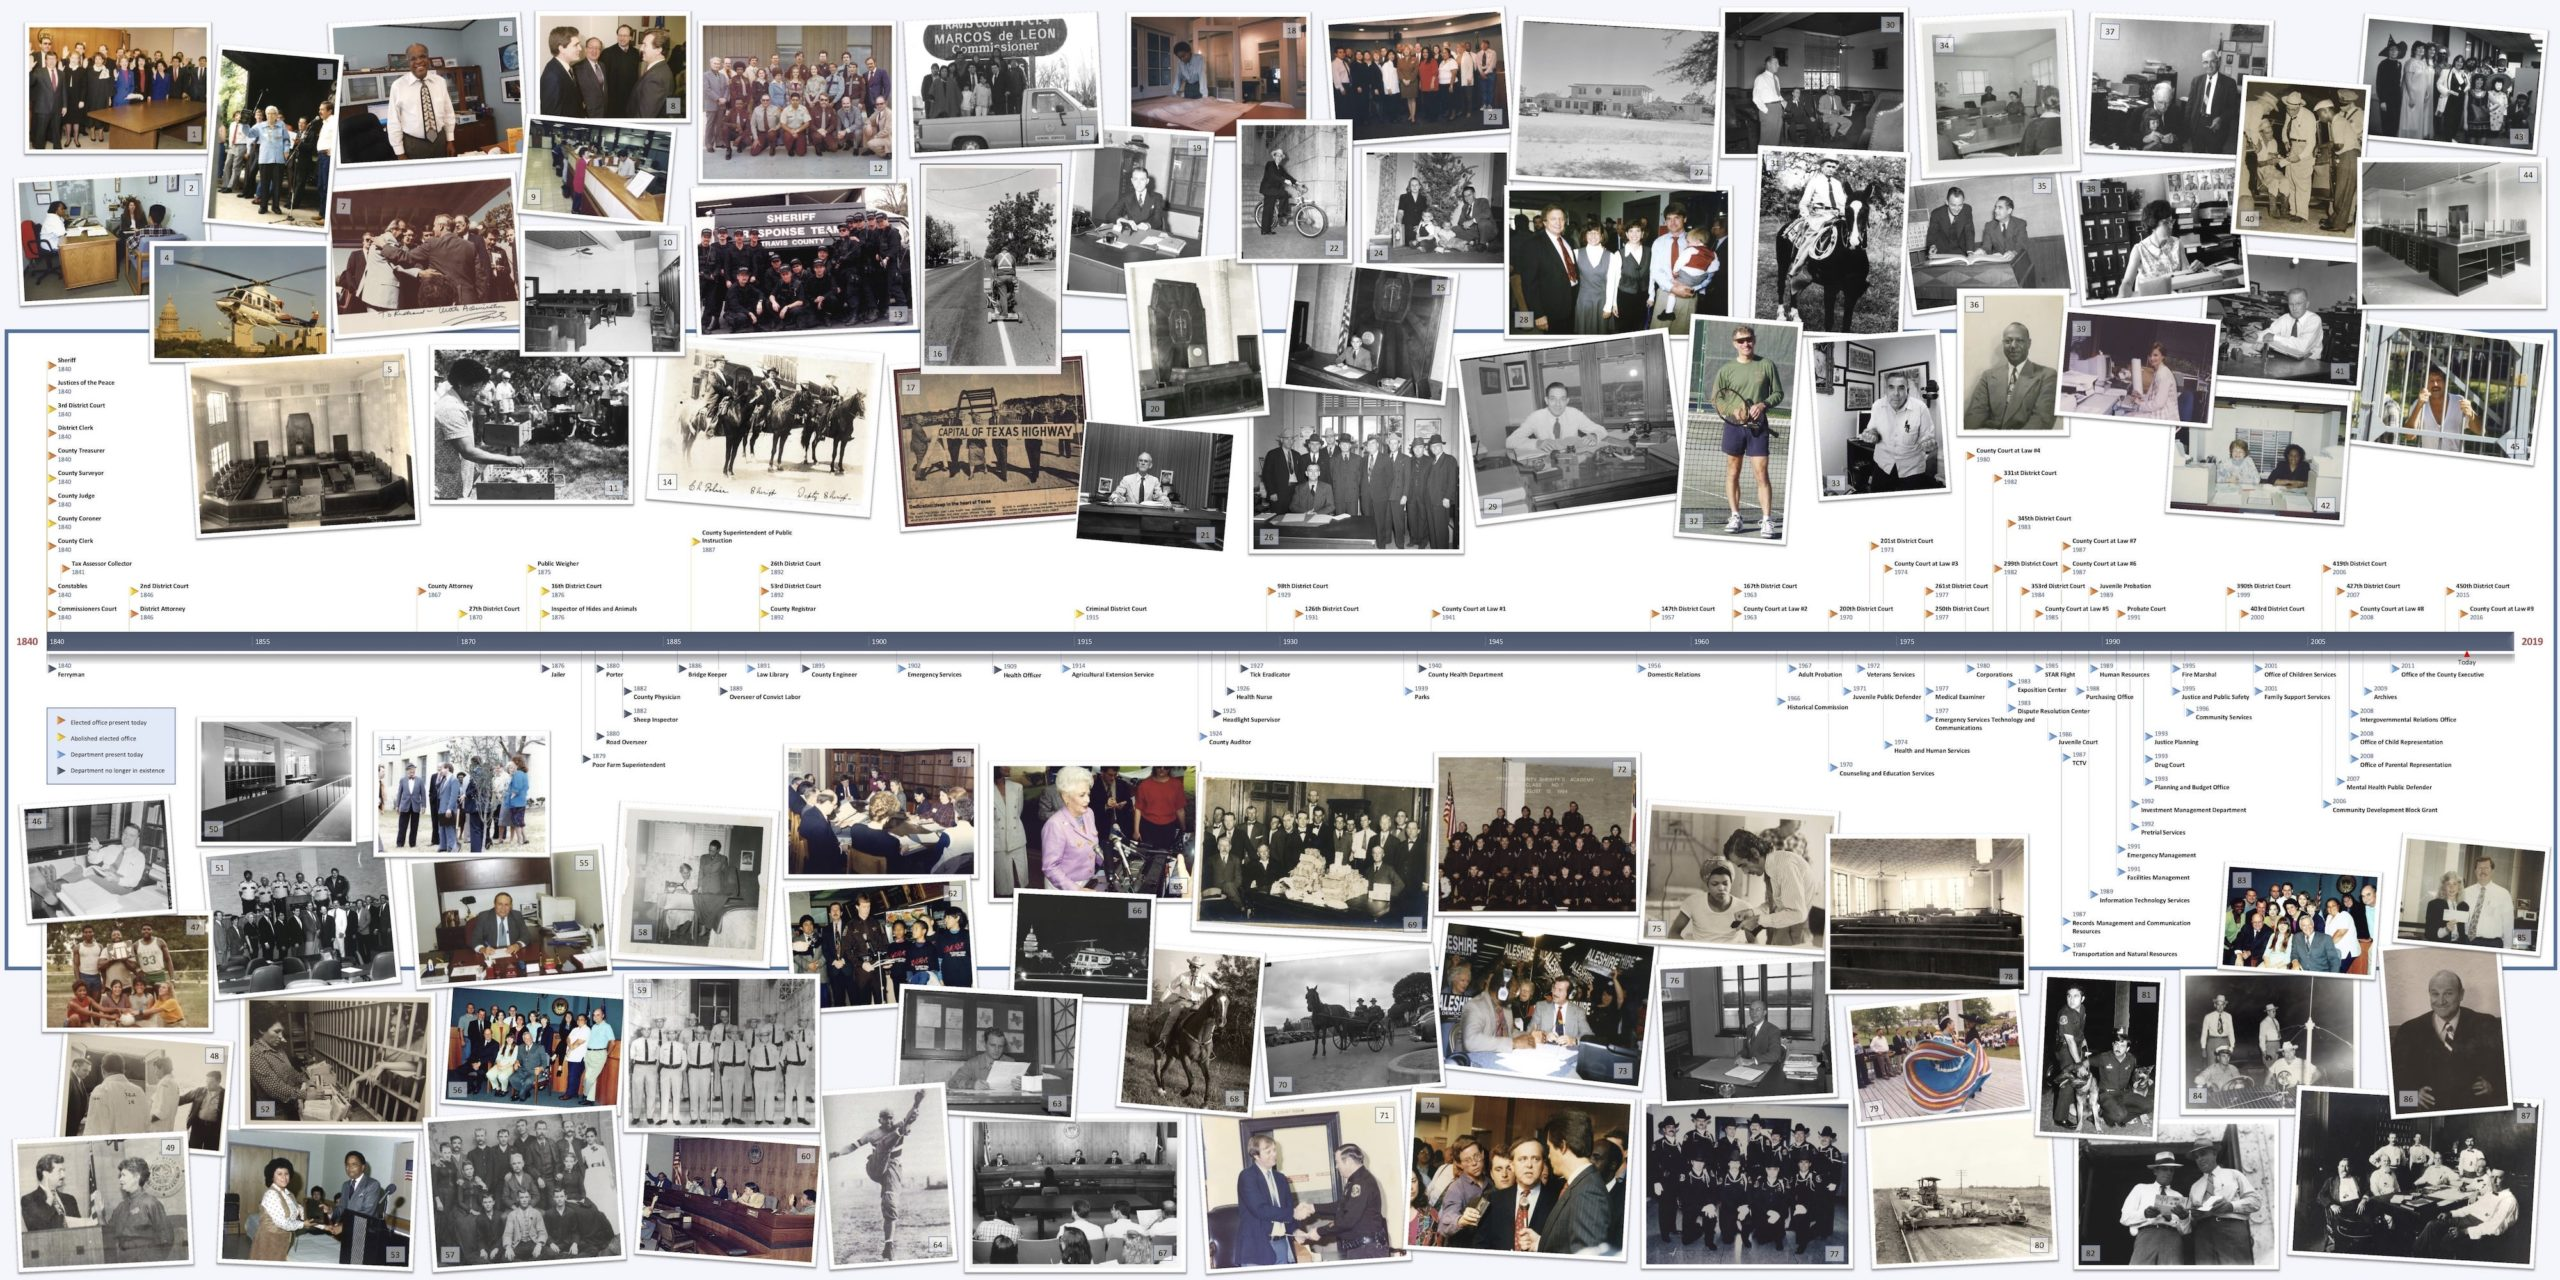 Timeline showing history of Travis County departments with photos